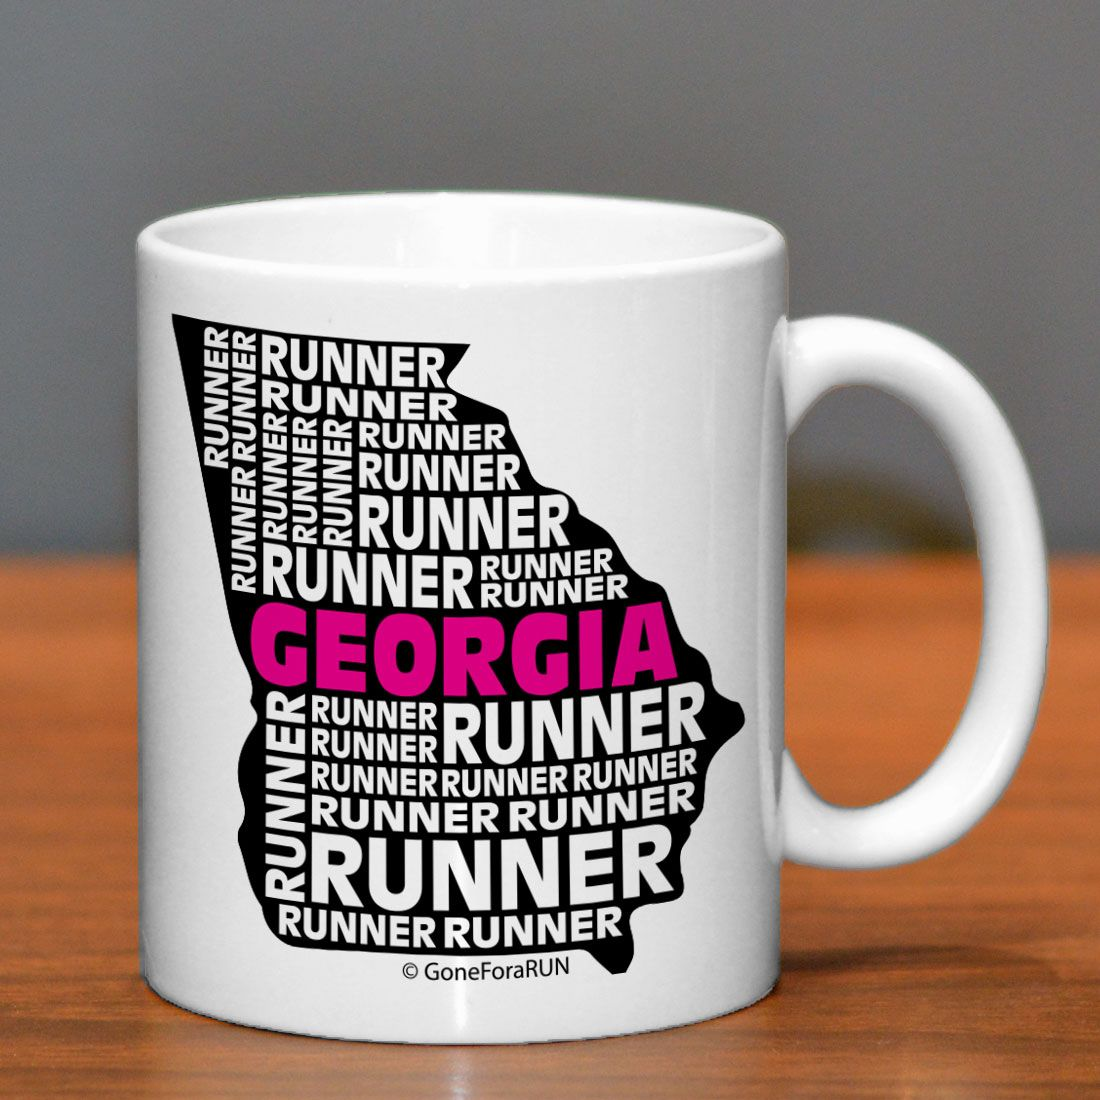 Georgia State Runner Ceramic Mug | Running Coffee Mugs | Coffee Mugs for Runners